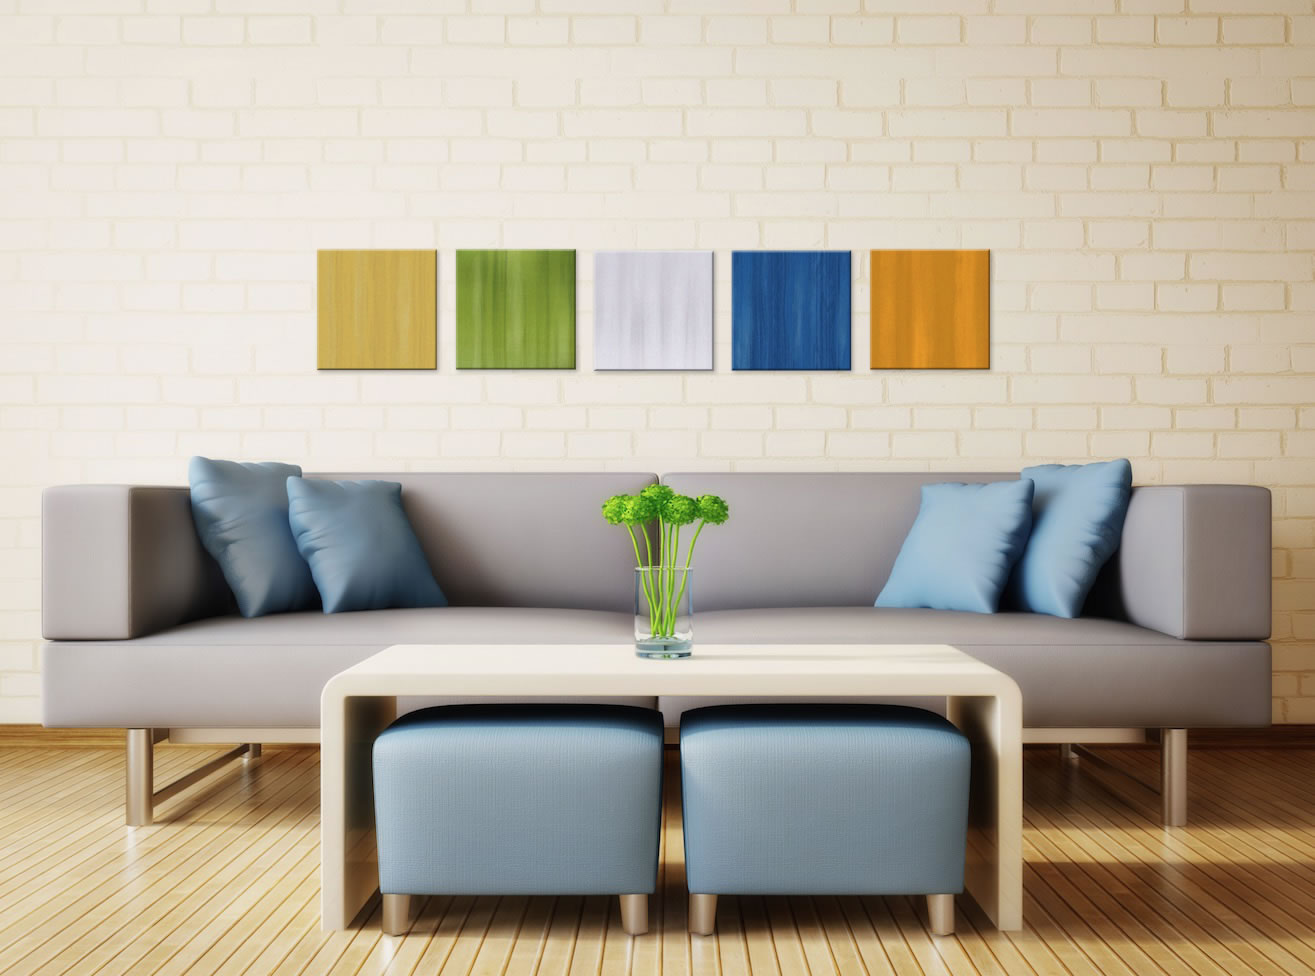 Summer Drink - Colorful Contemporary Accents by Elana Reiter - Lifestyle Image